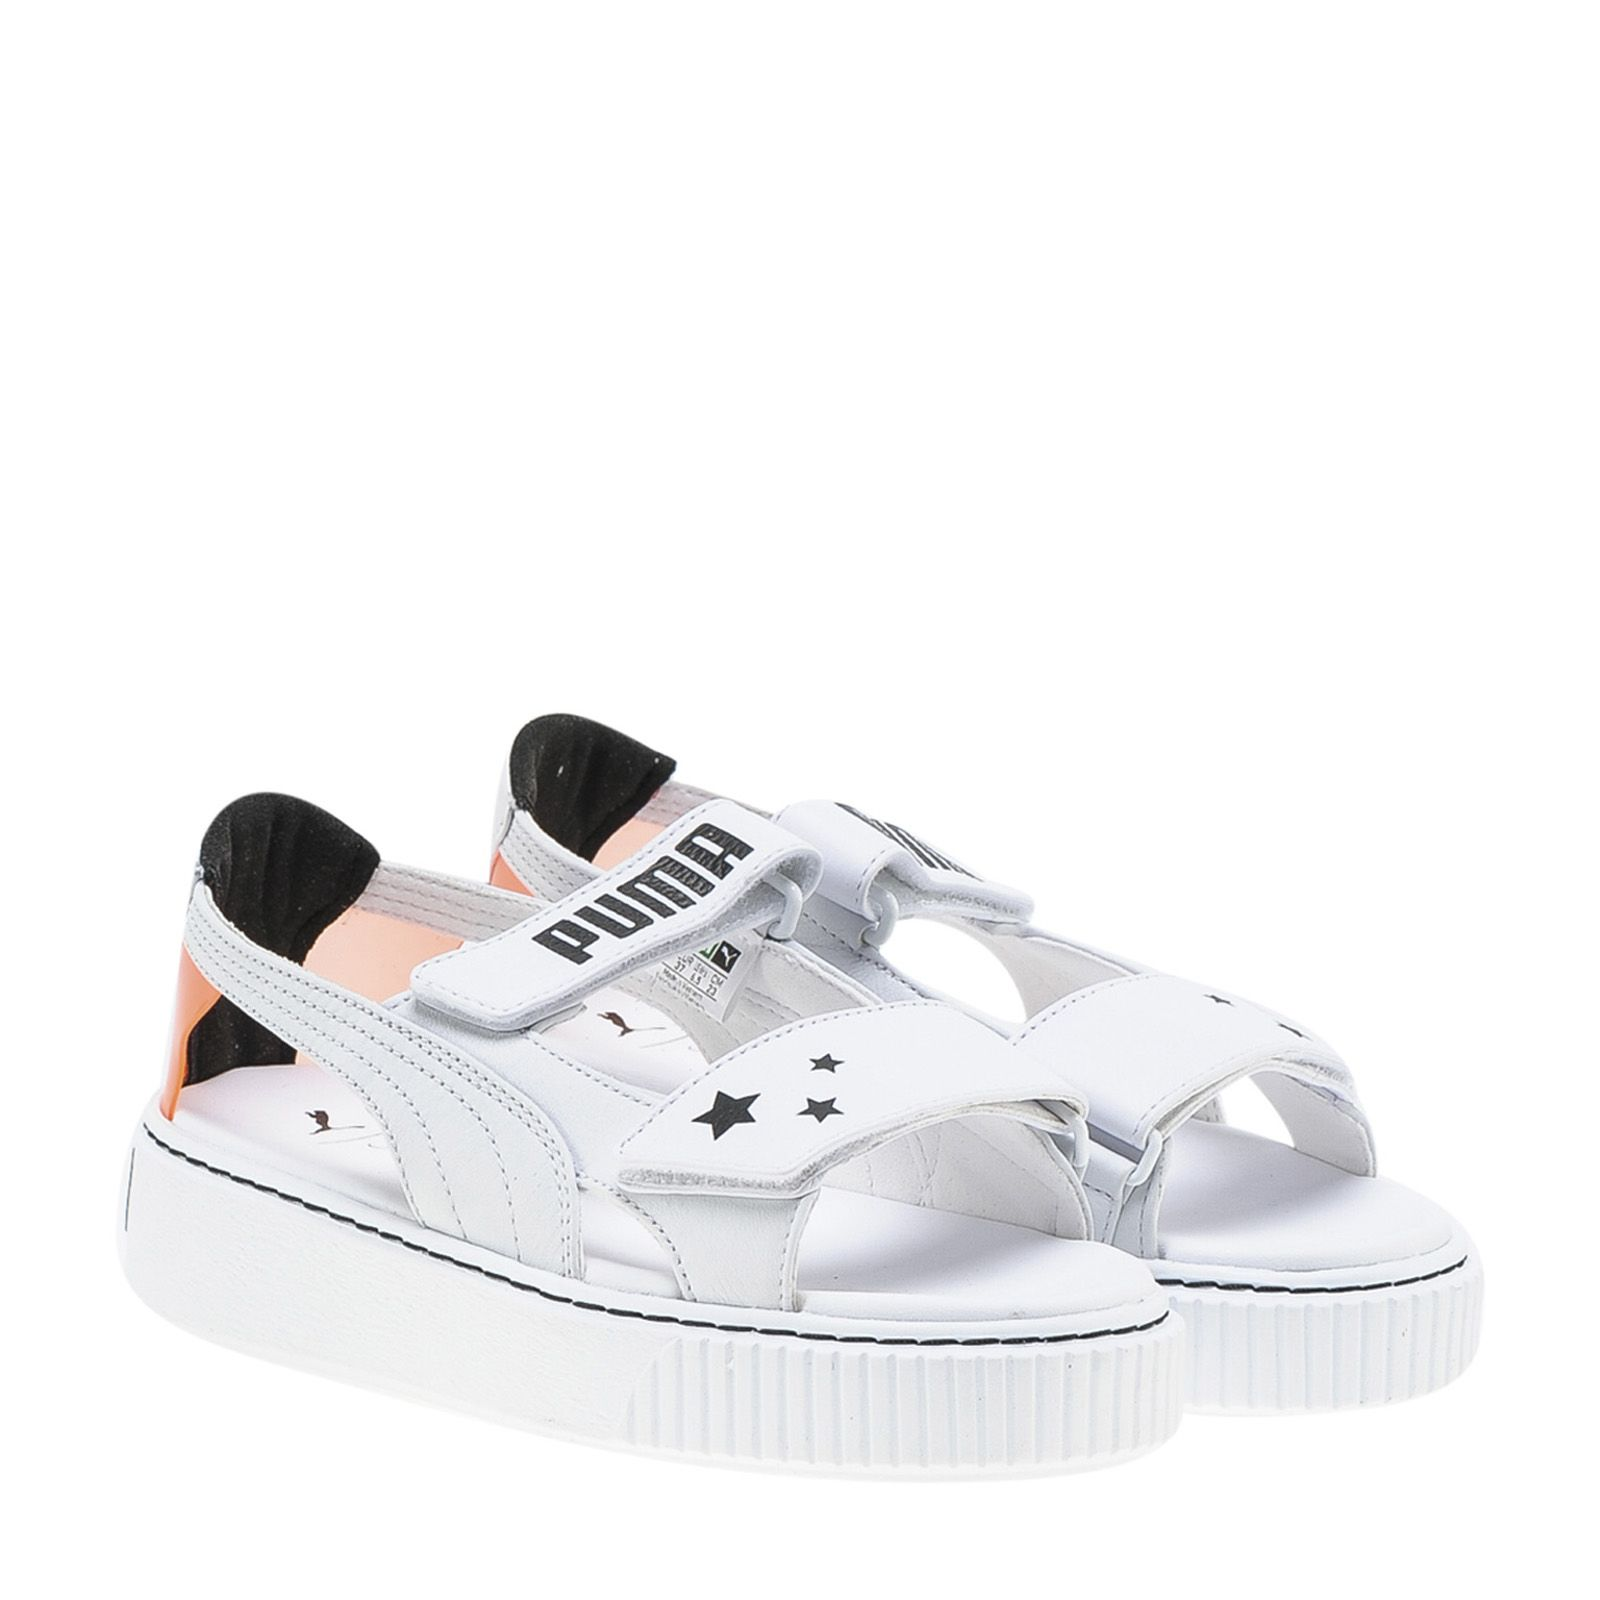 Puma X Sophia Webster Open Toe Strap Sneakers